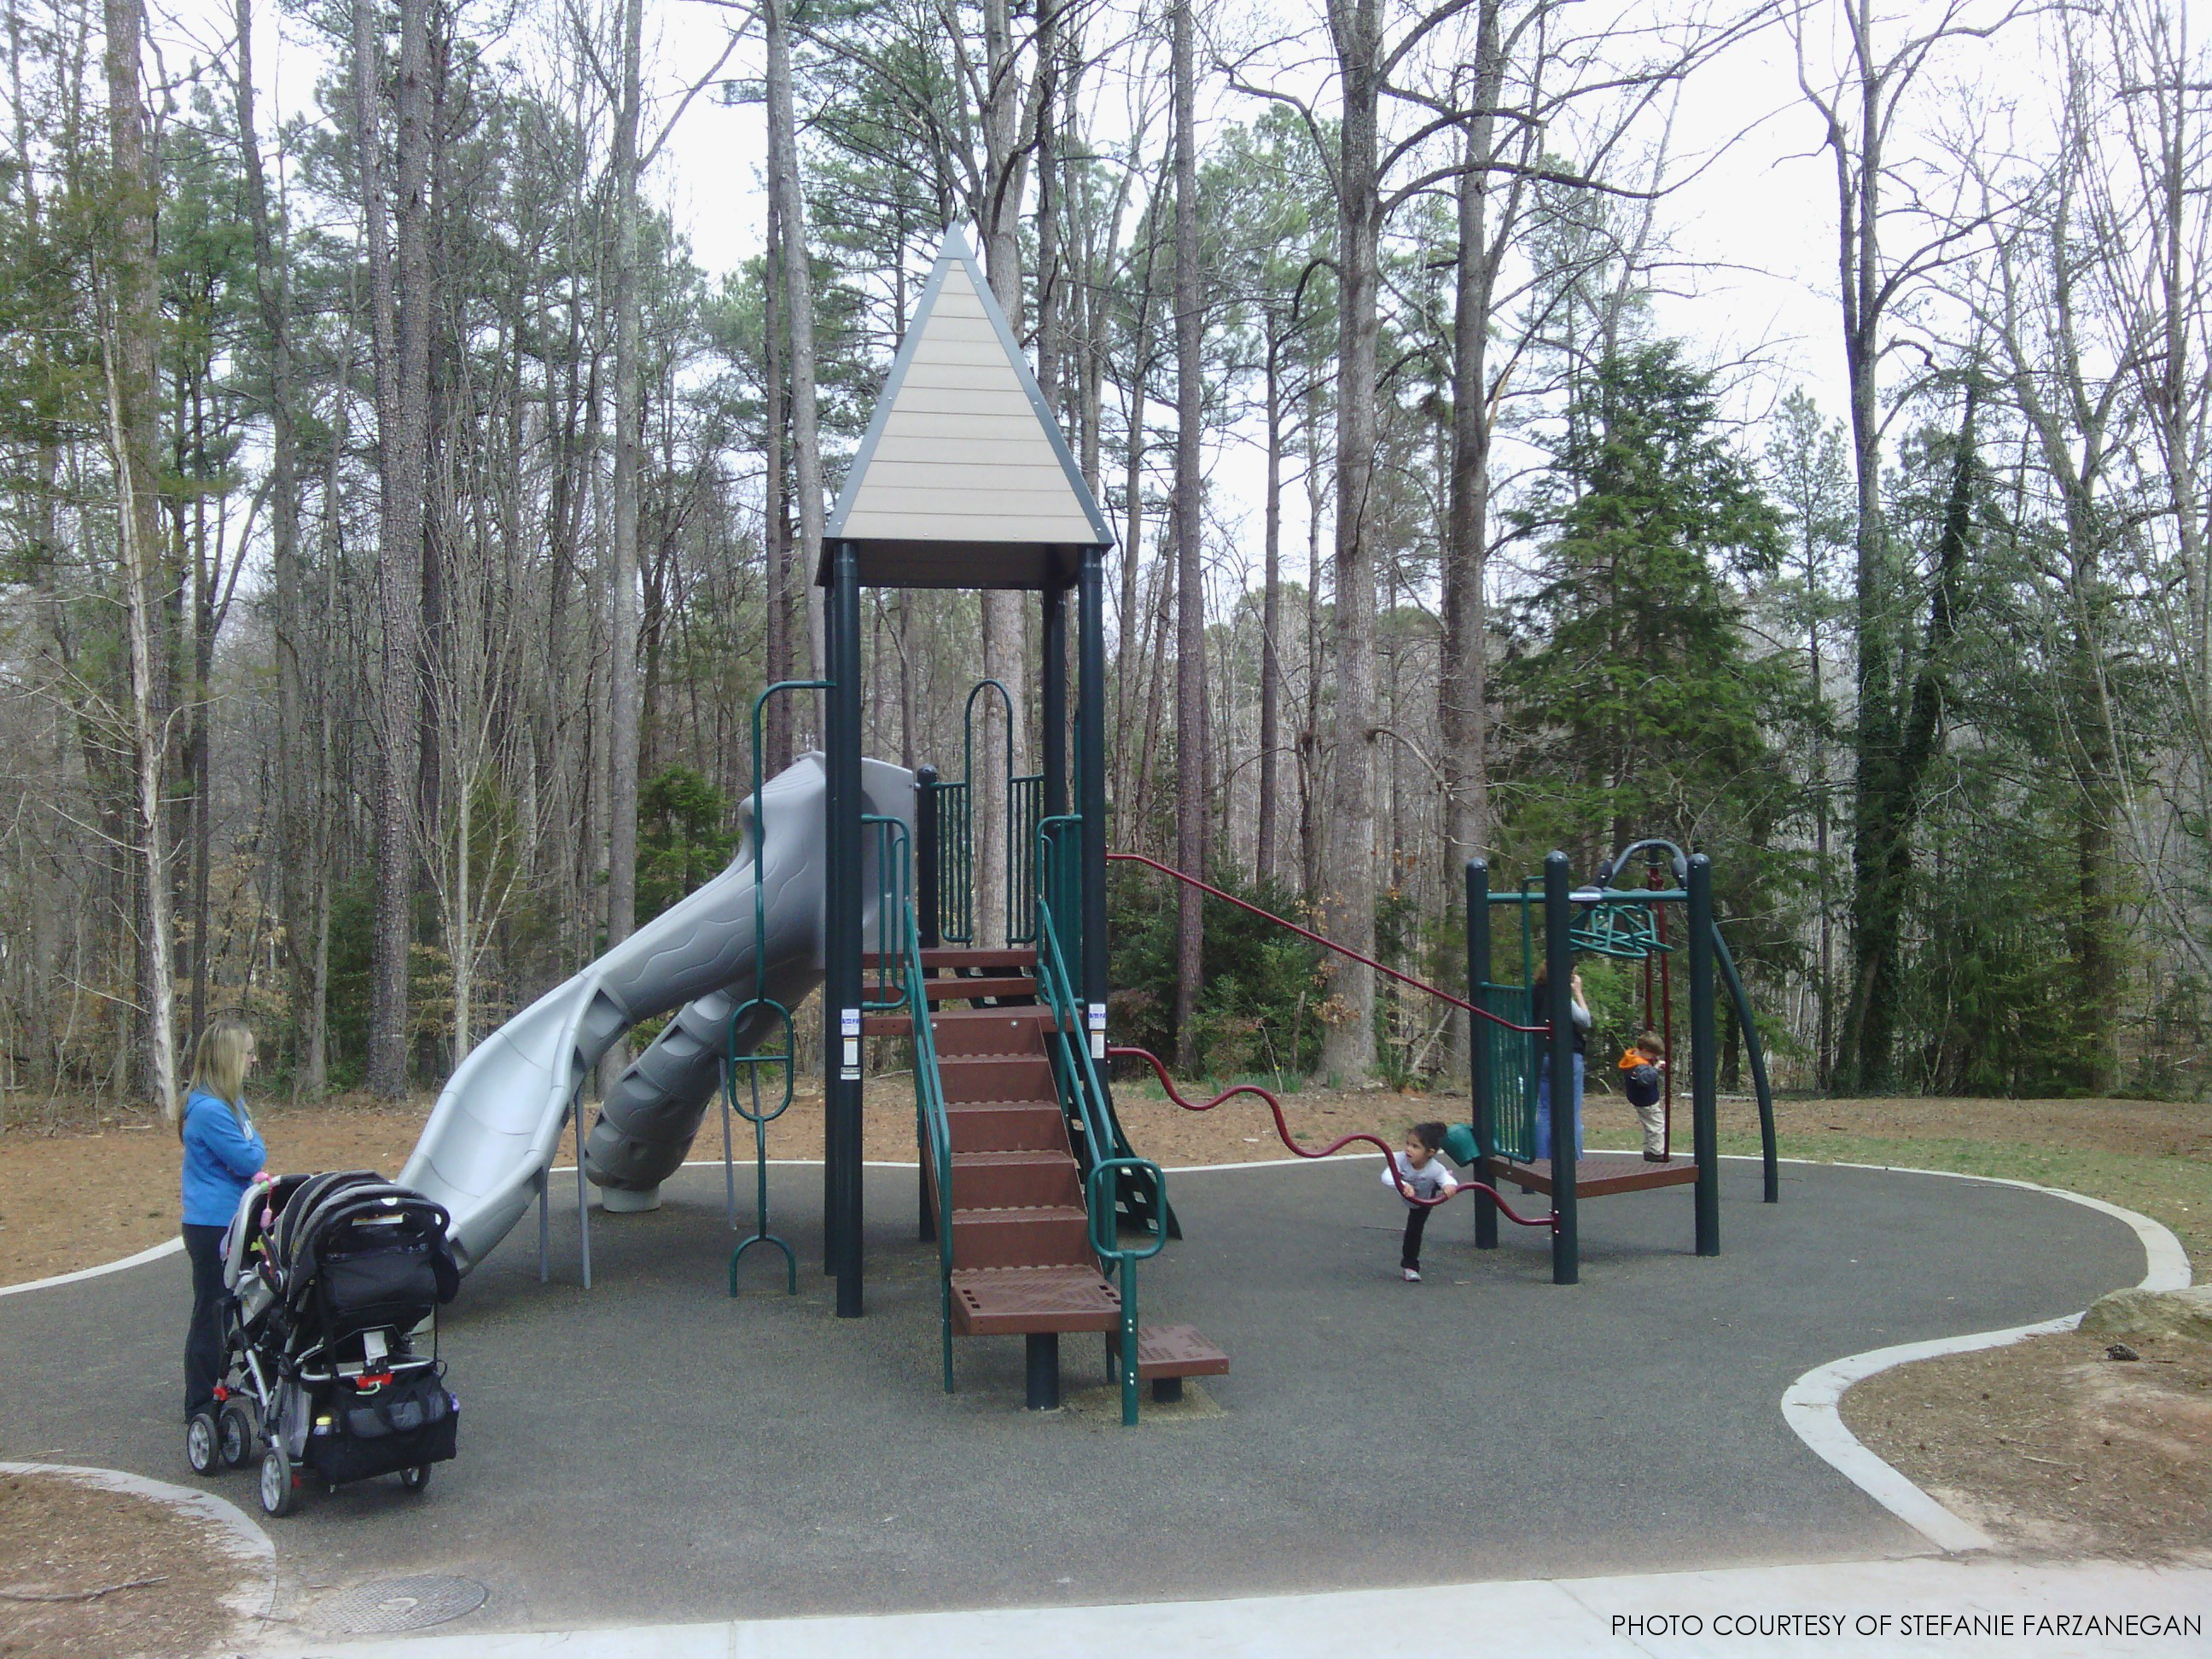 A picture of the Strickland Road Park in Raleigh, NC.  What makes this park great is the variety of climbing equipment for kids to explore, while the lack of moving parts make this playground less risky.